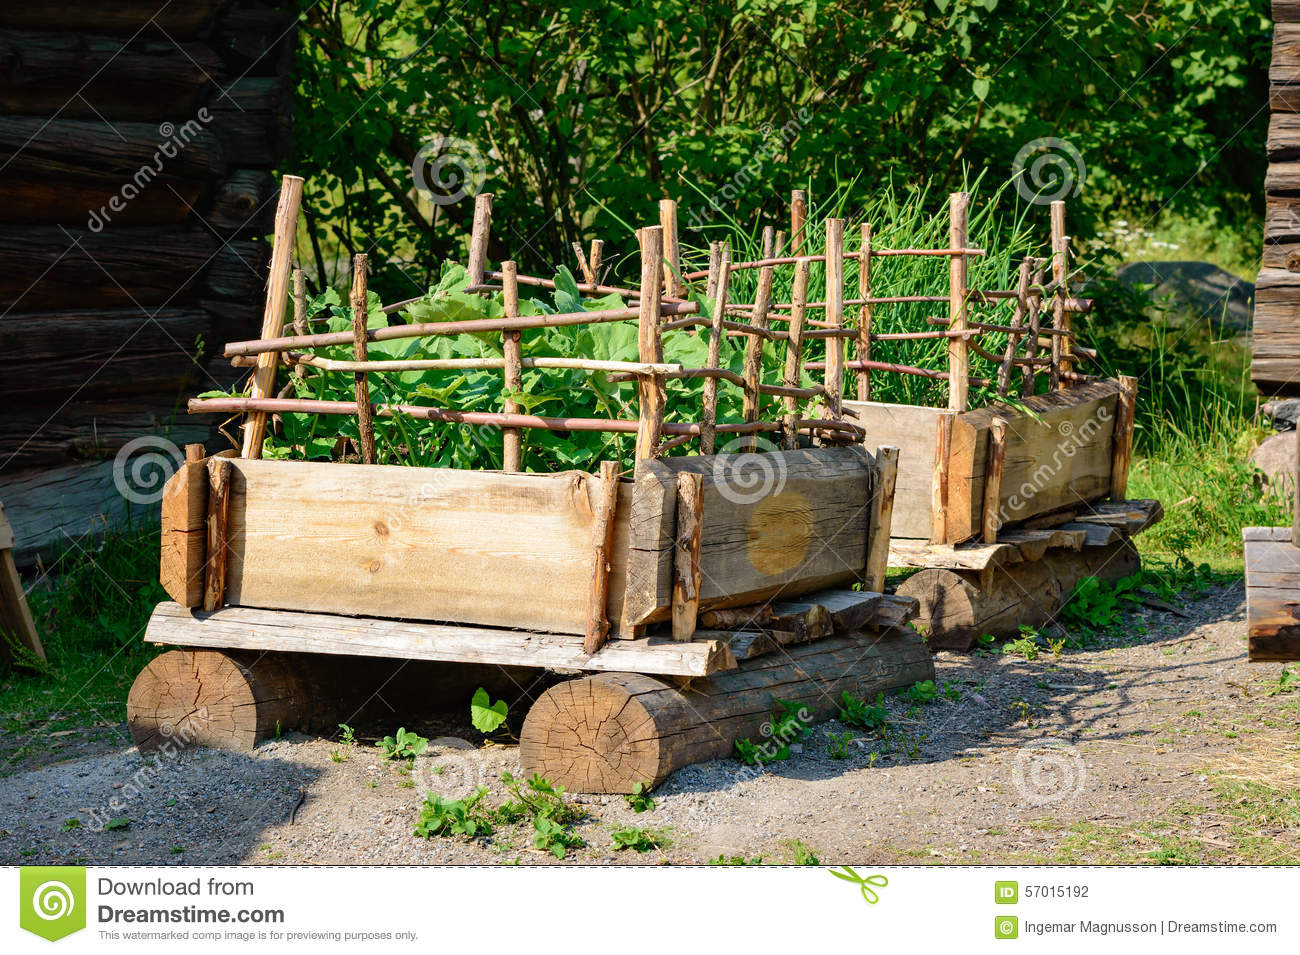 Jardin de palette photo stock image 57015192 for Palette de jardin